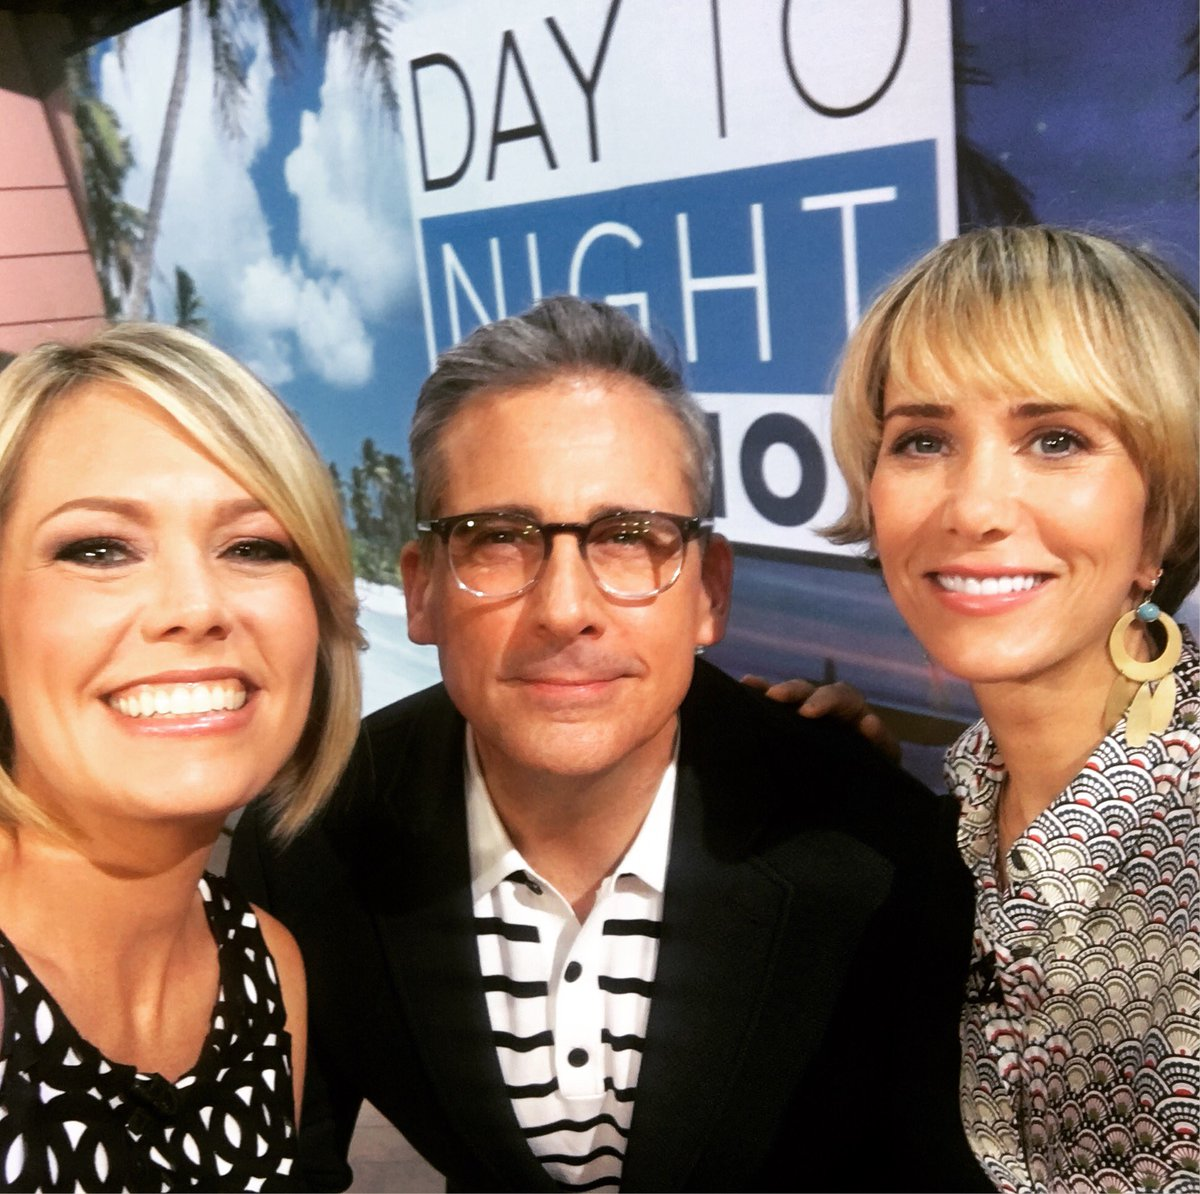 Dylan Dreyer On Twitter Absolutely Loved Meeting Stevecarell And